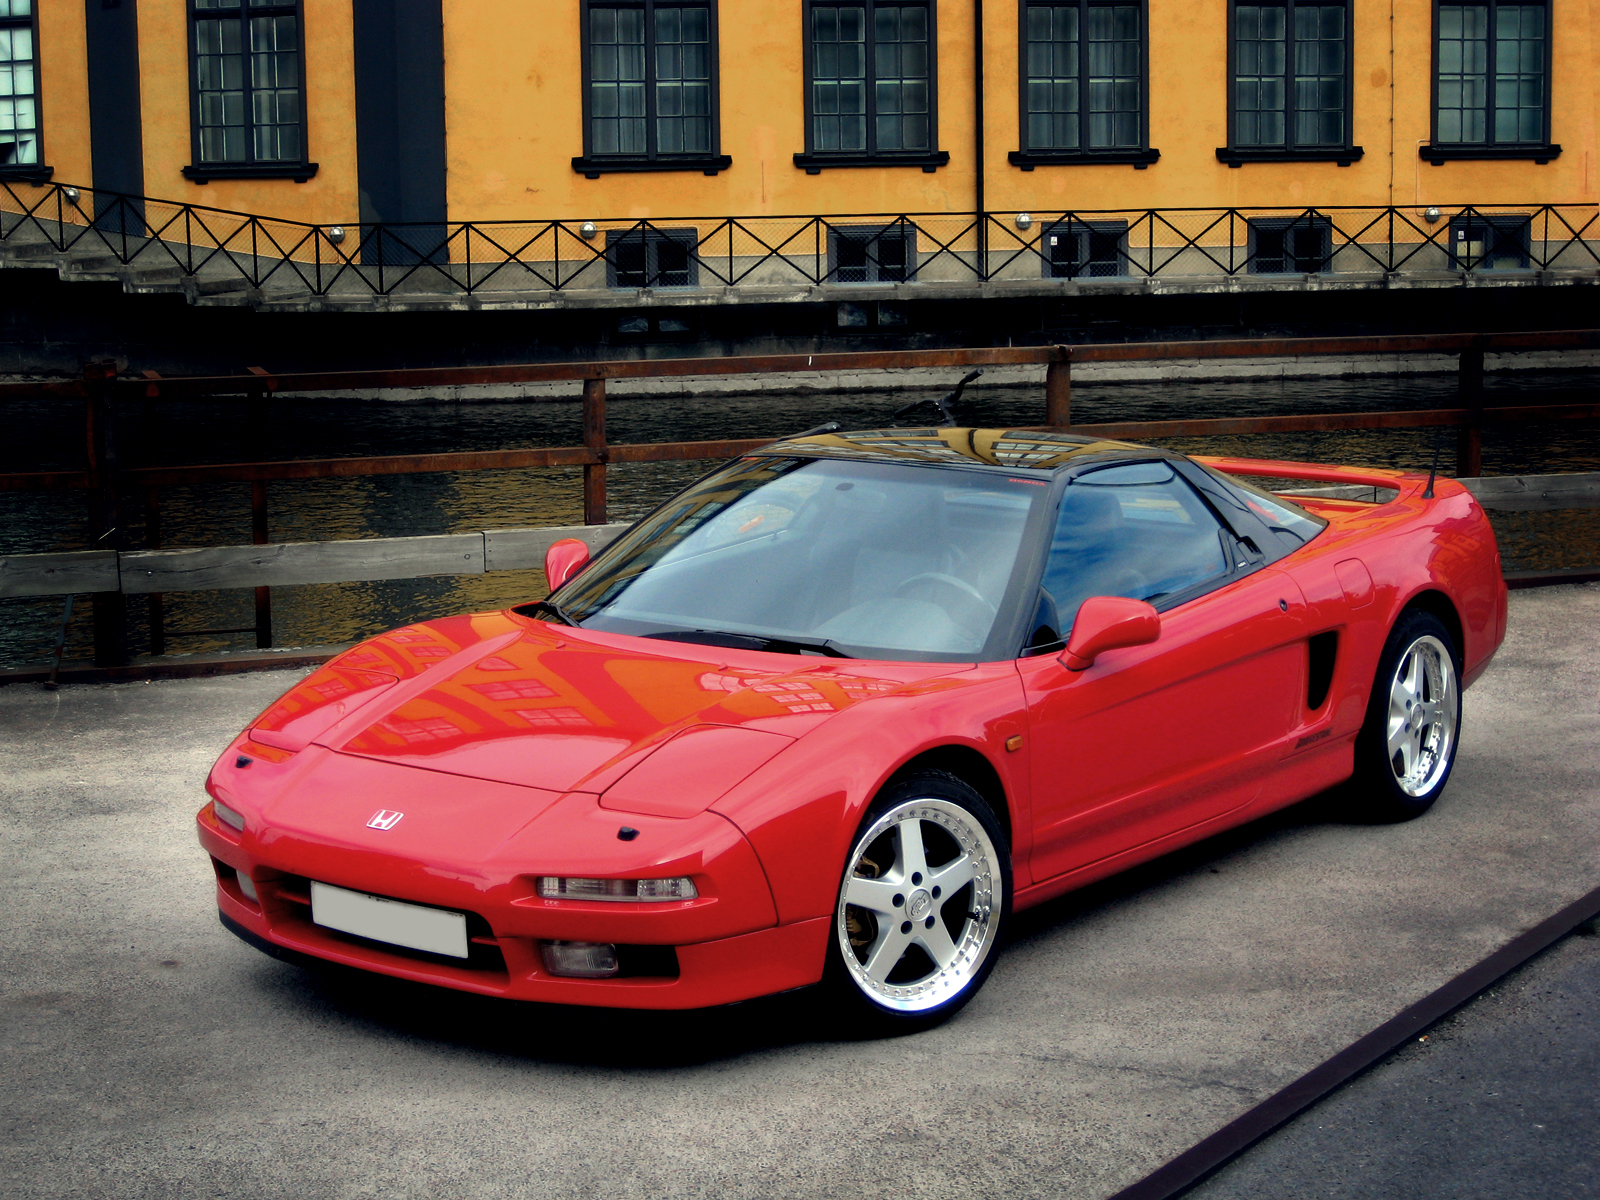 3dtuning of honda nsx coupe 1990 unique on line car configurator for more than. Black Bedroom Furniture Sets. Home Design Ideas